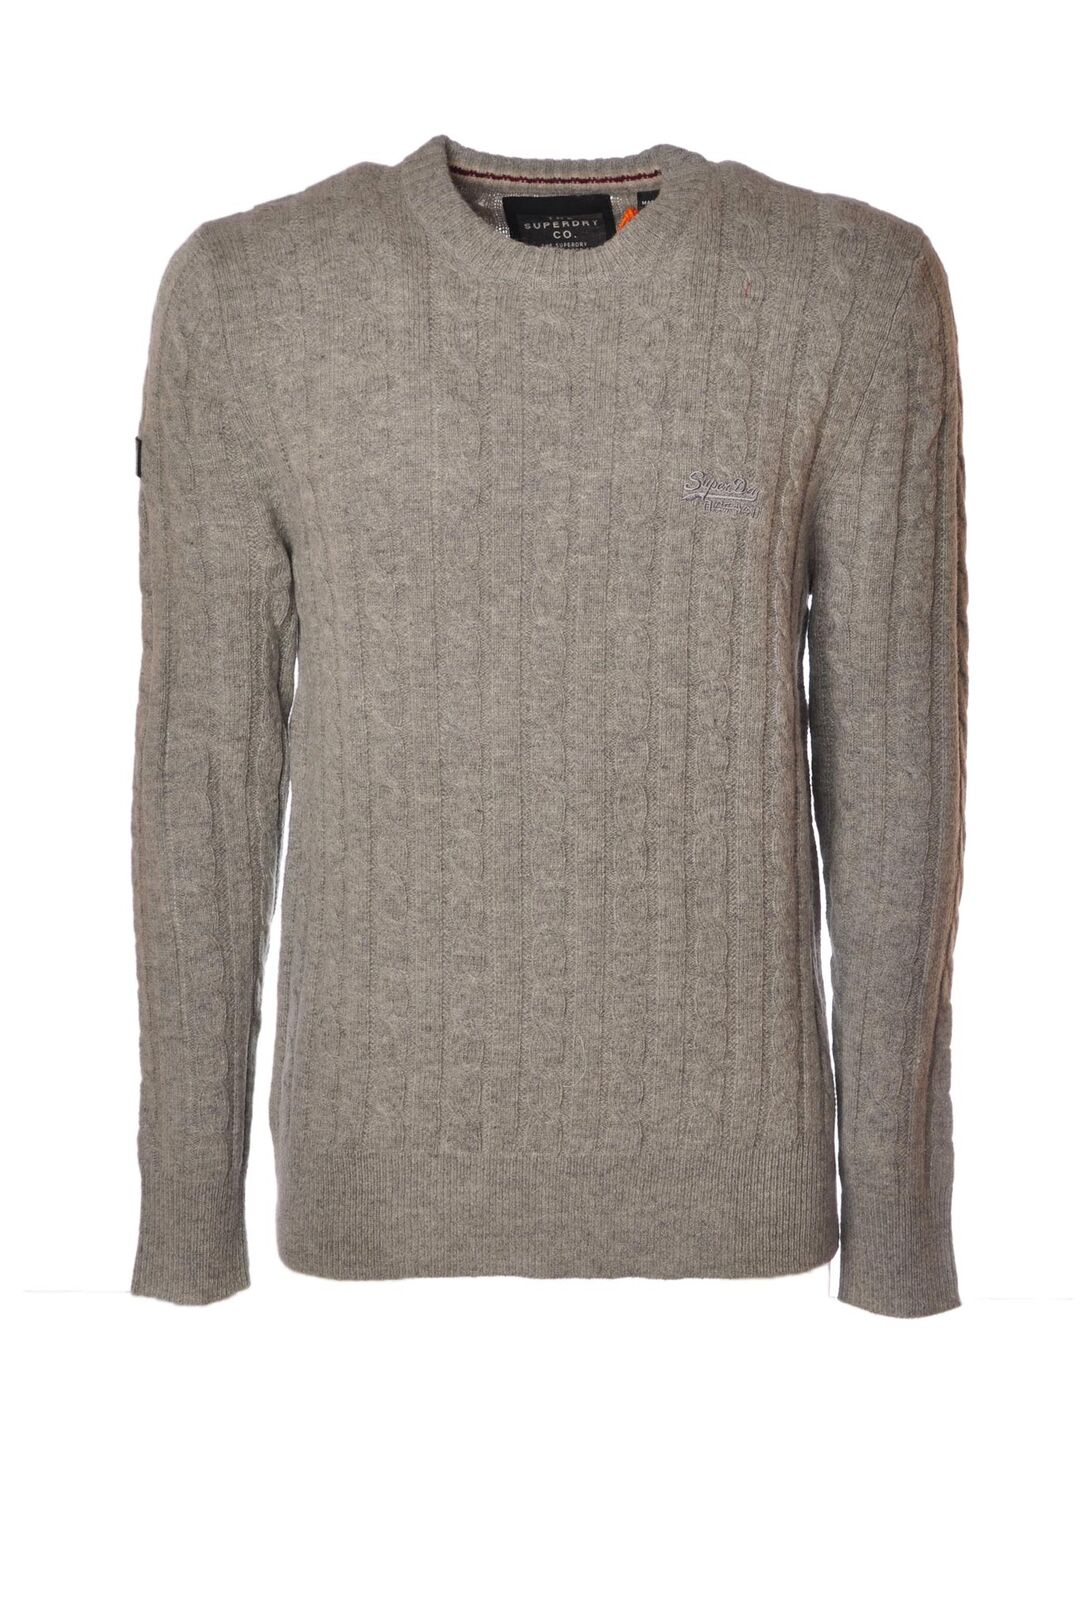 Superdry -  - Superdry  Sweaters - Male - grigio - 4348126A184441 5295dd